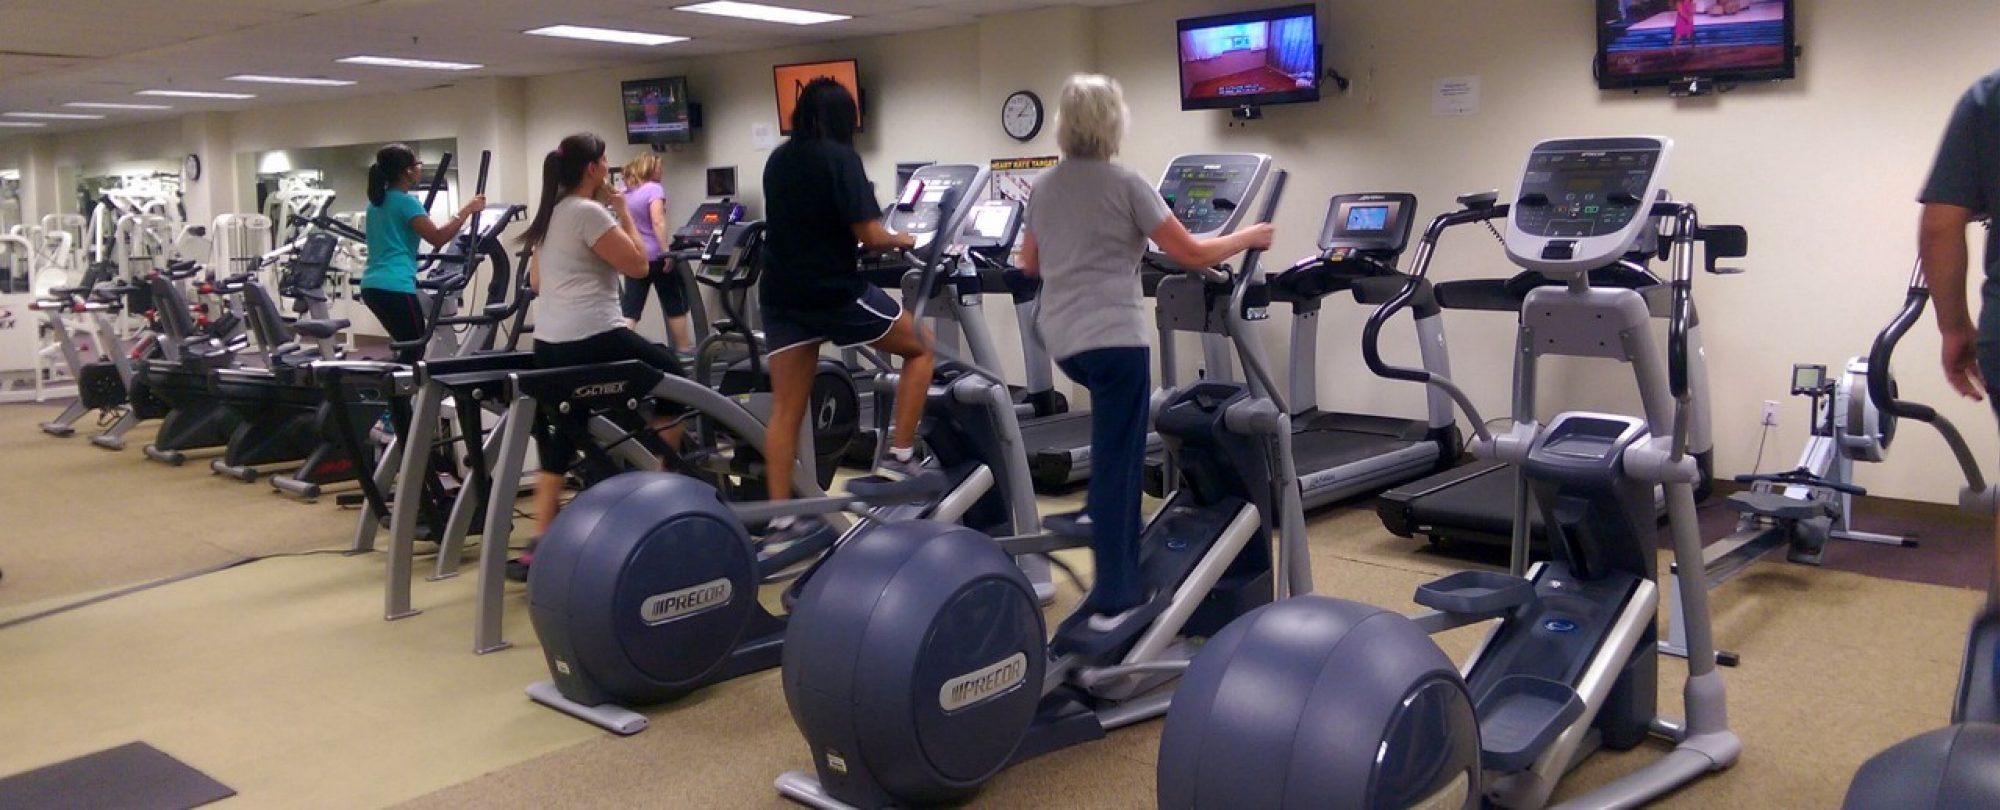 Photo of row of elliptical machines